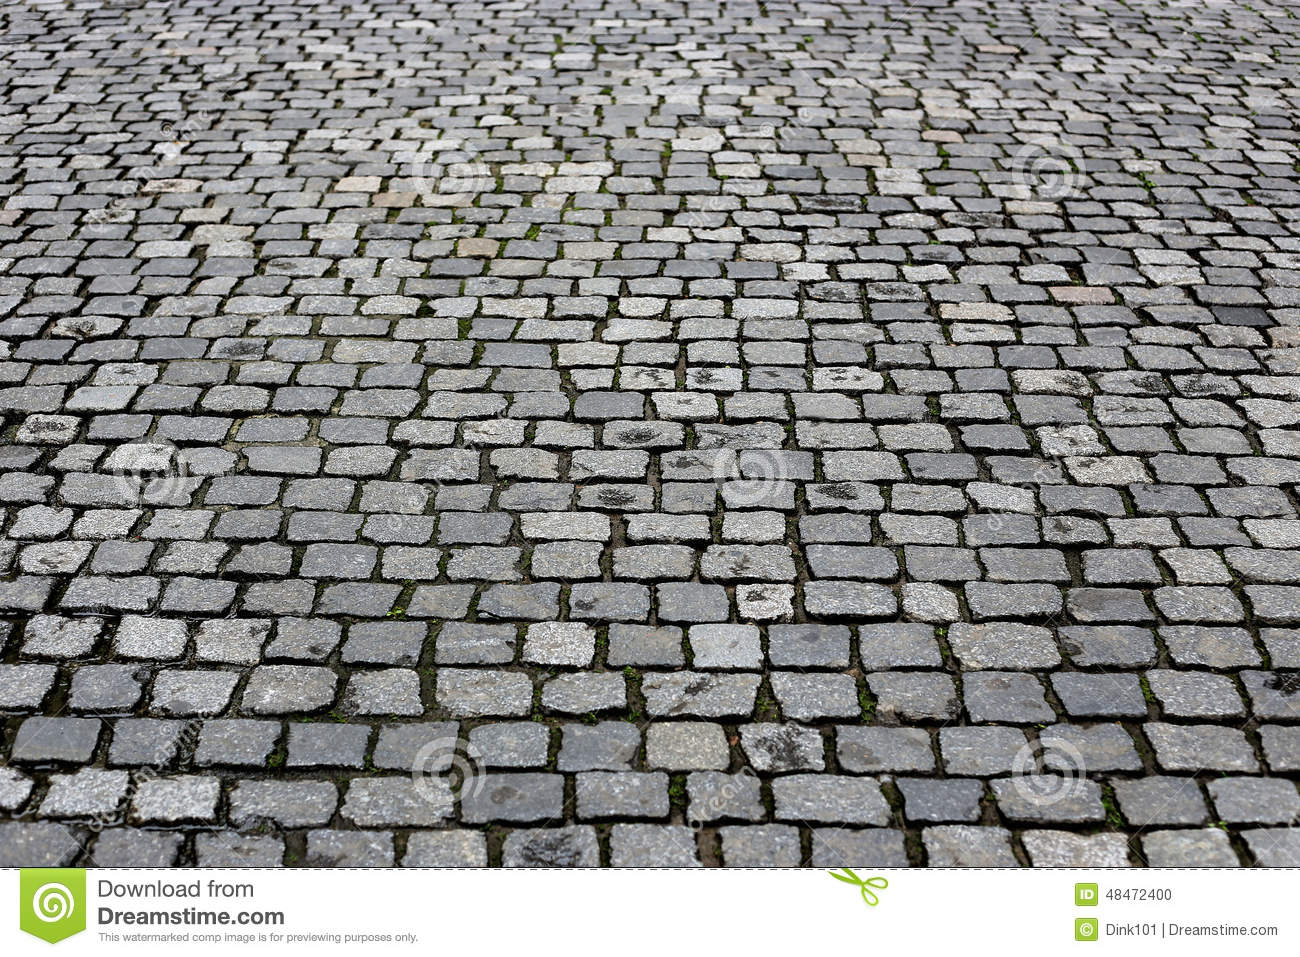 Block Paving Prices >> Texture paved road stock photo. Image of cobble, block - 48472400